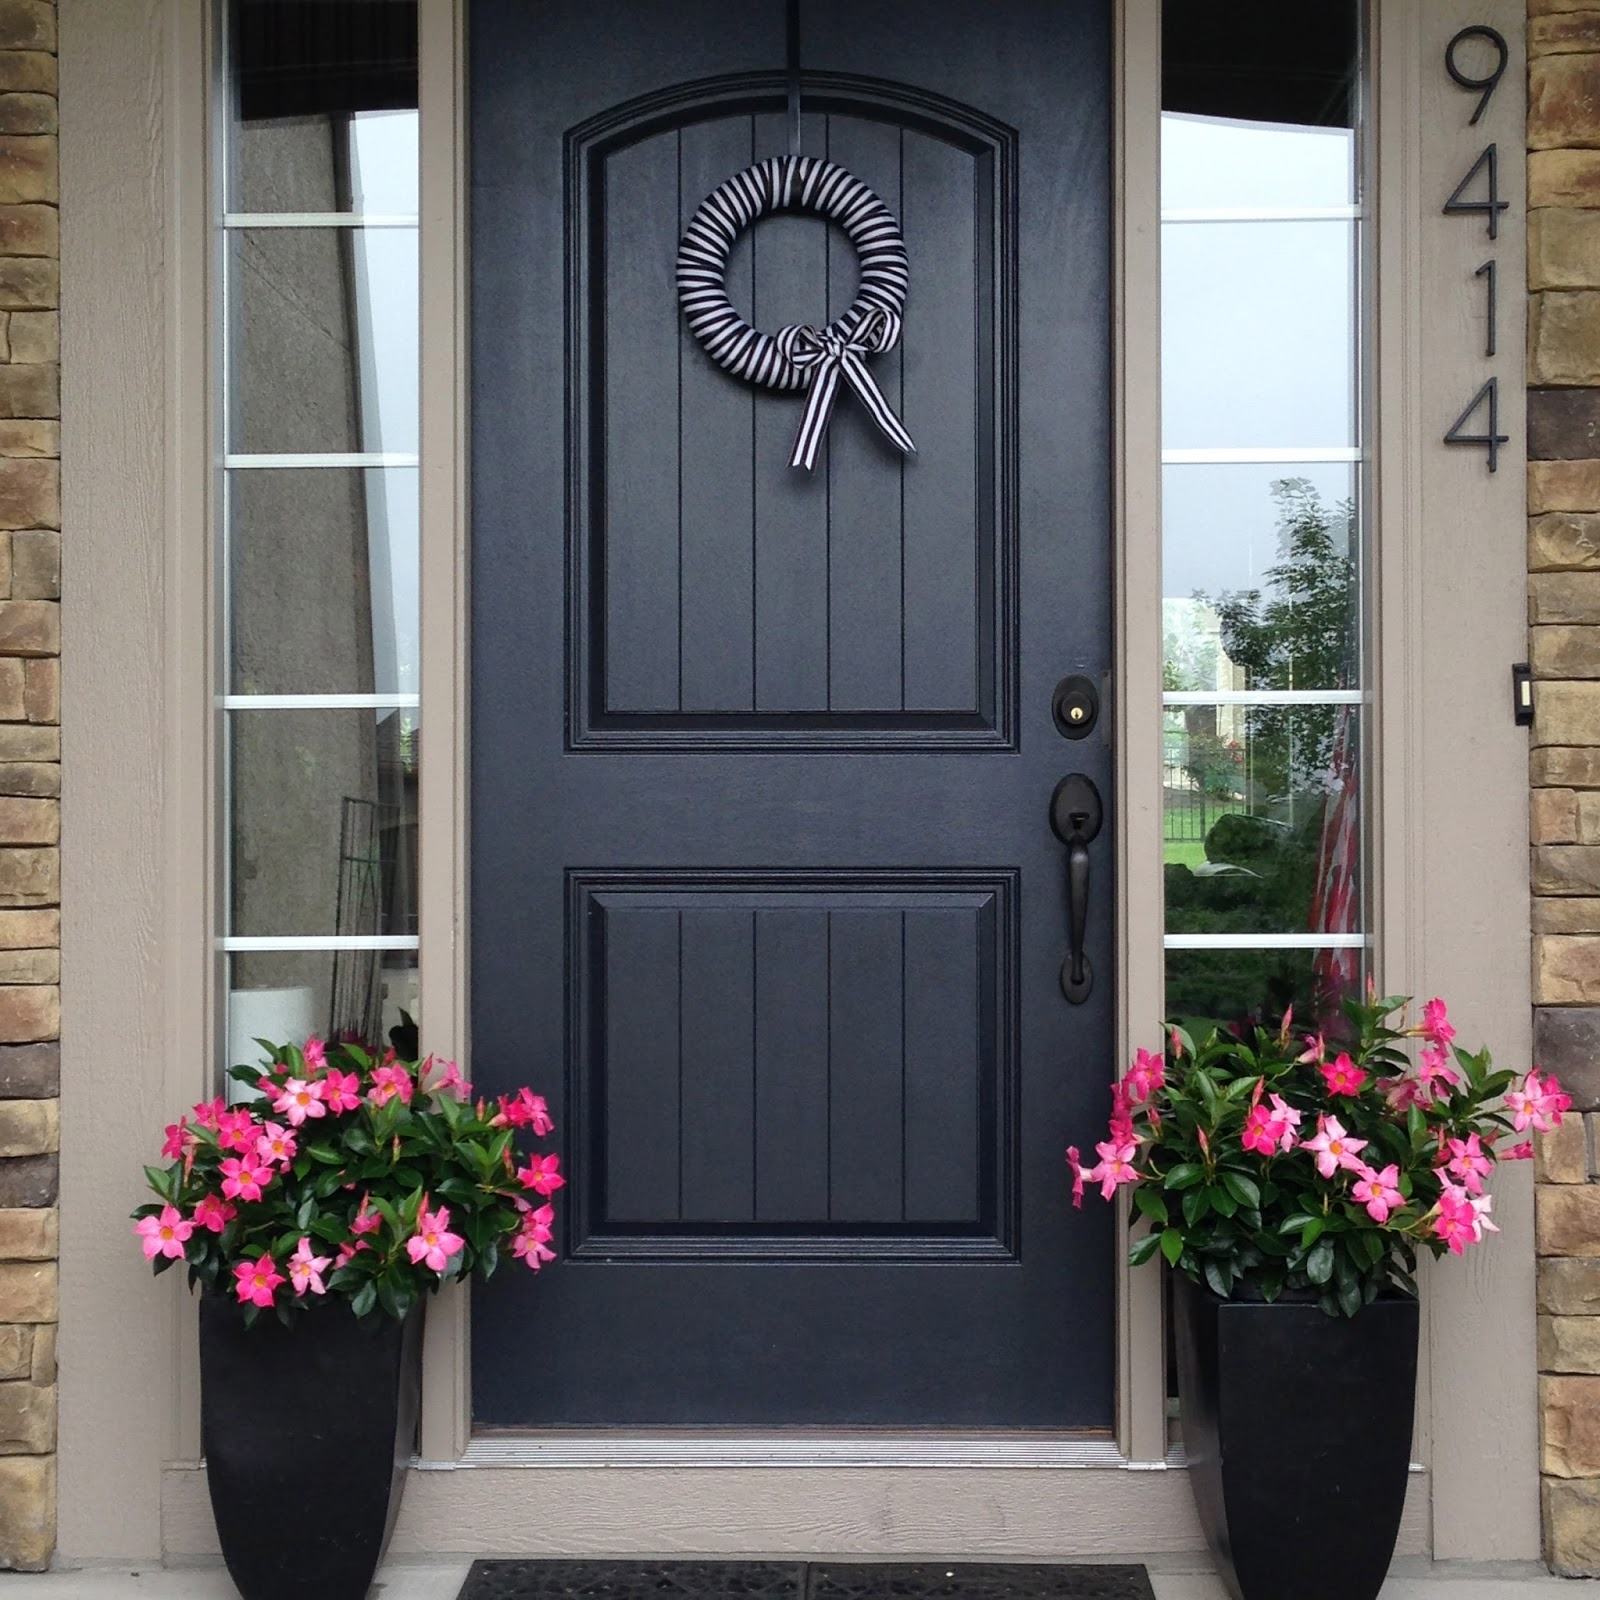 Life love larson front door dreaming for Home front door ideas